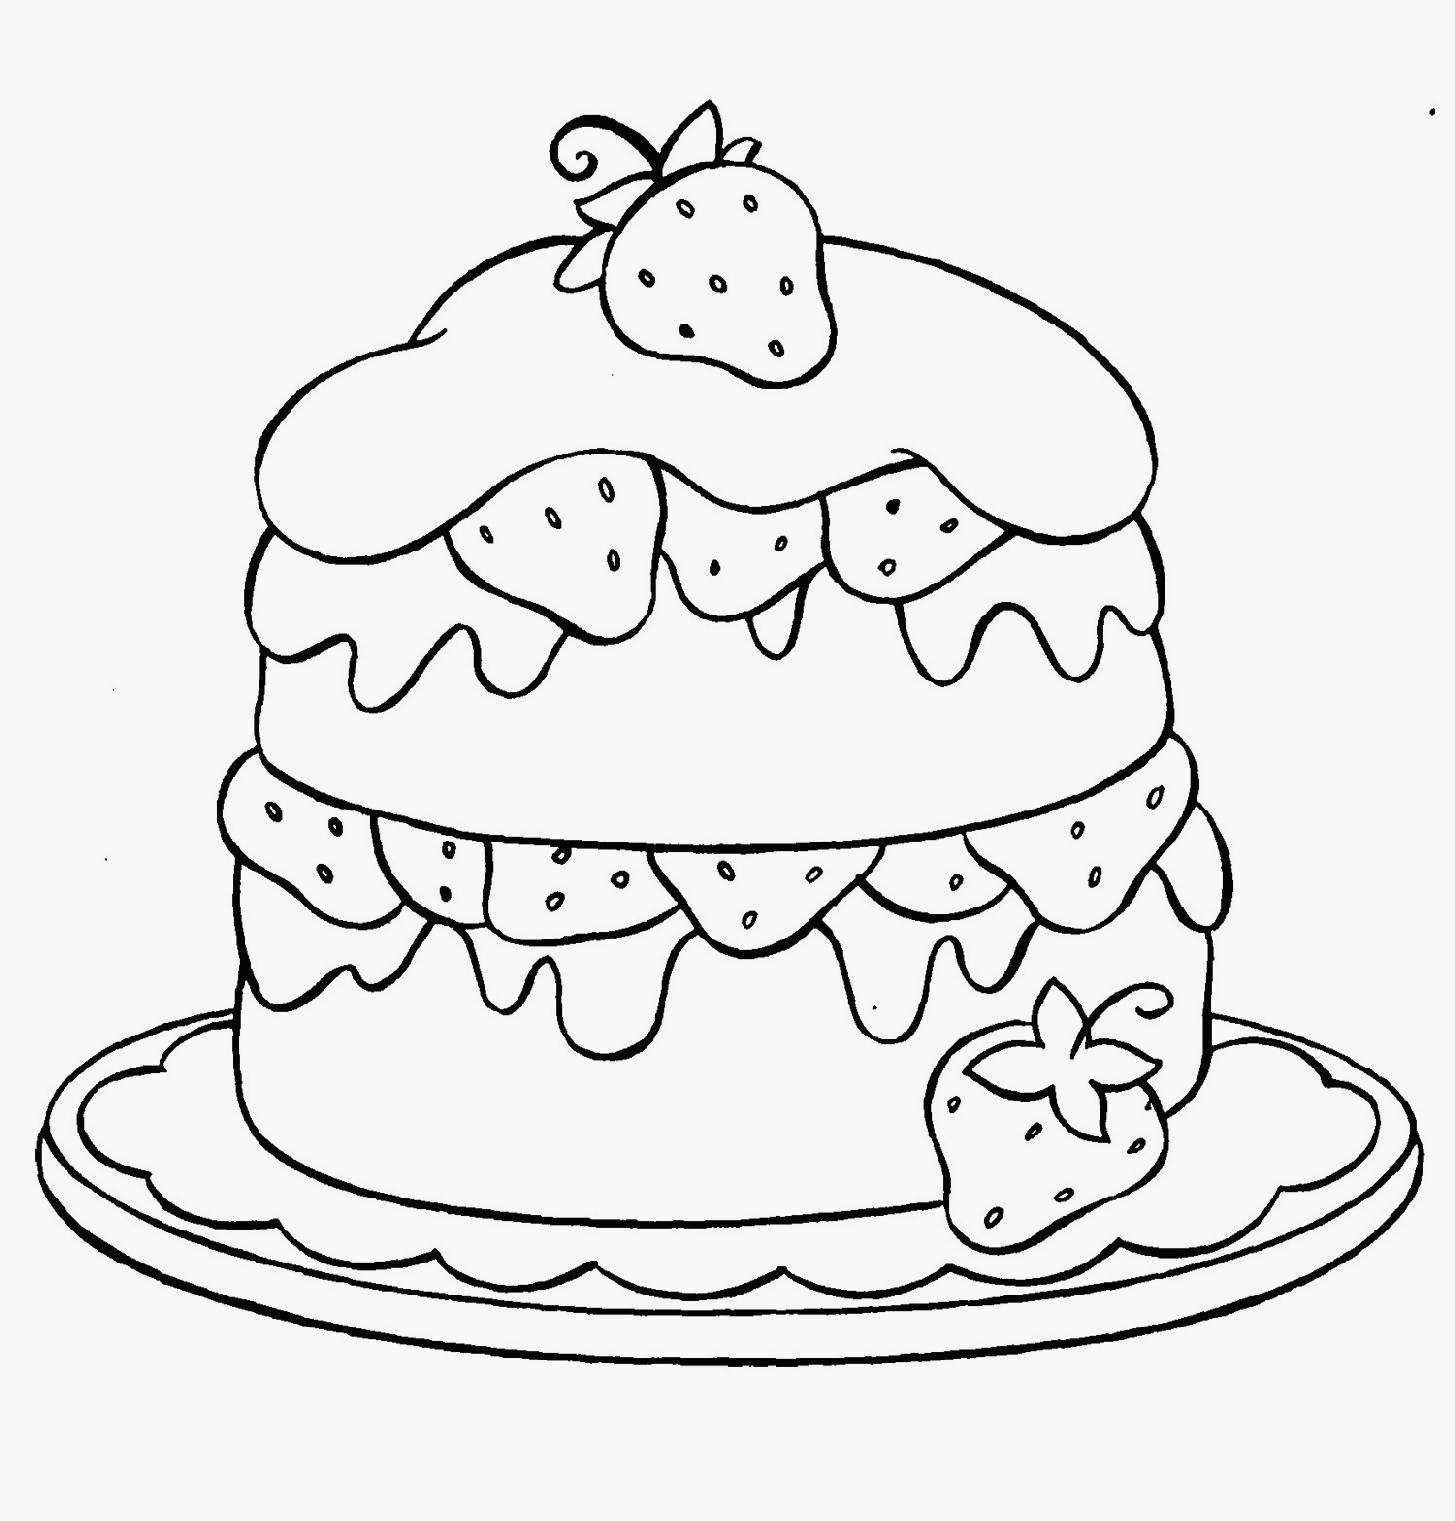 1455x1521 Cupcake Free Coloring Pages For Kids Happy Birthday Cupcake